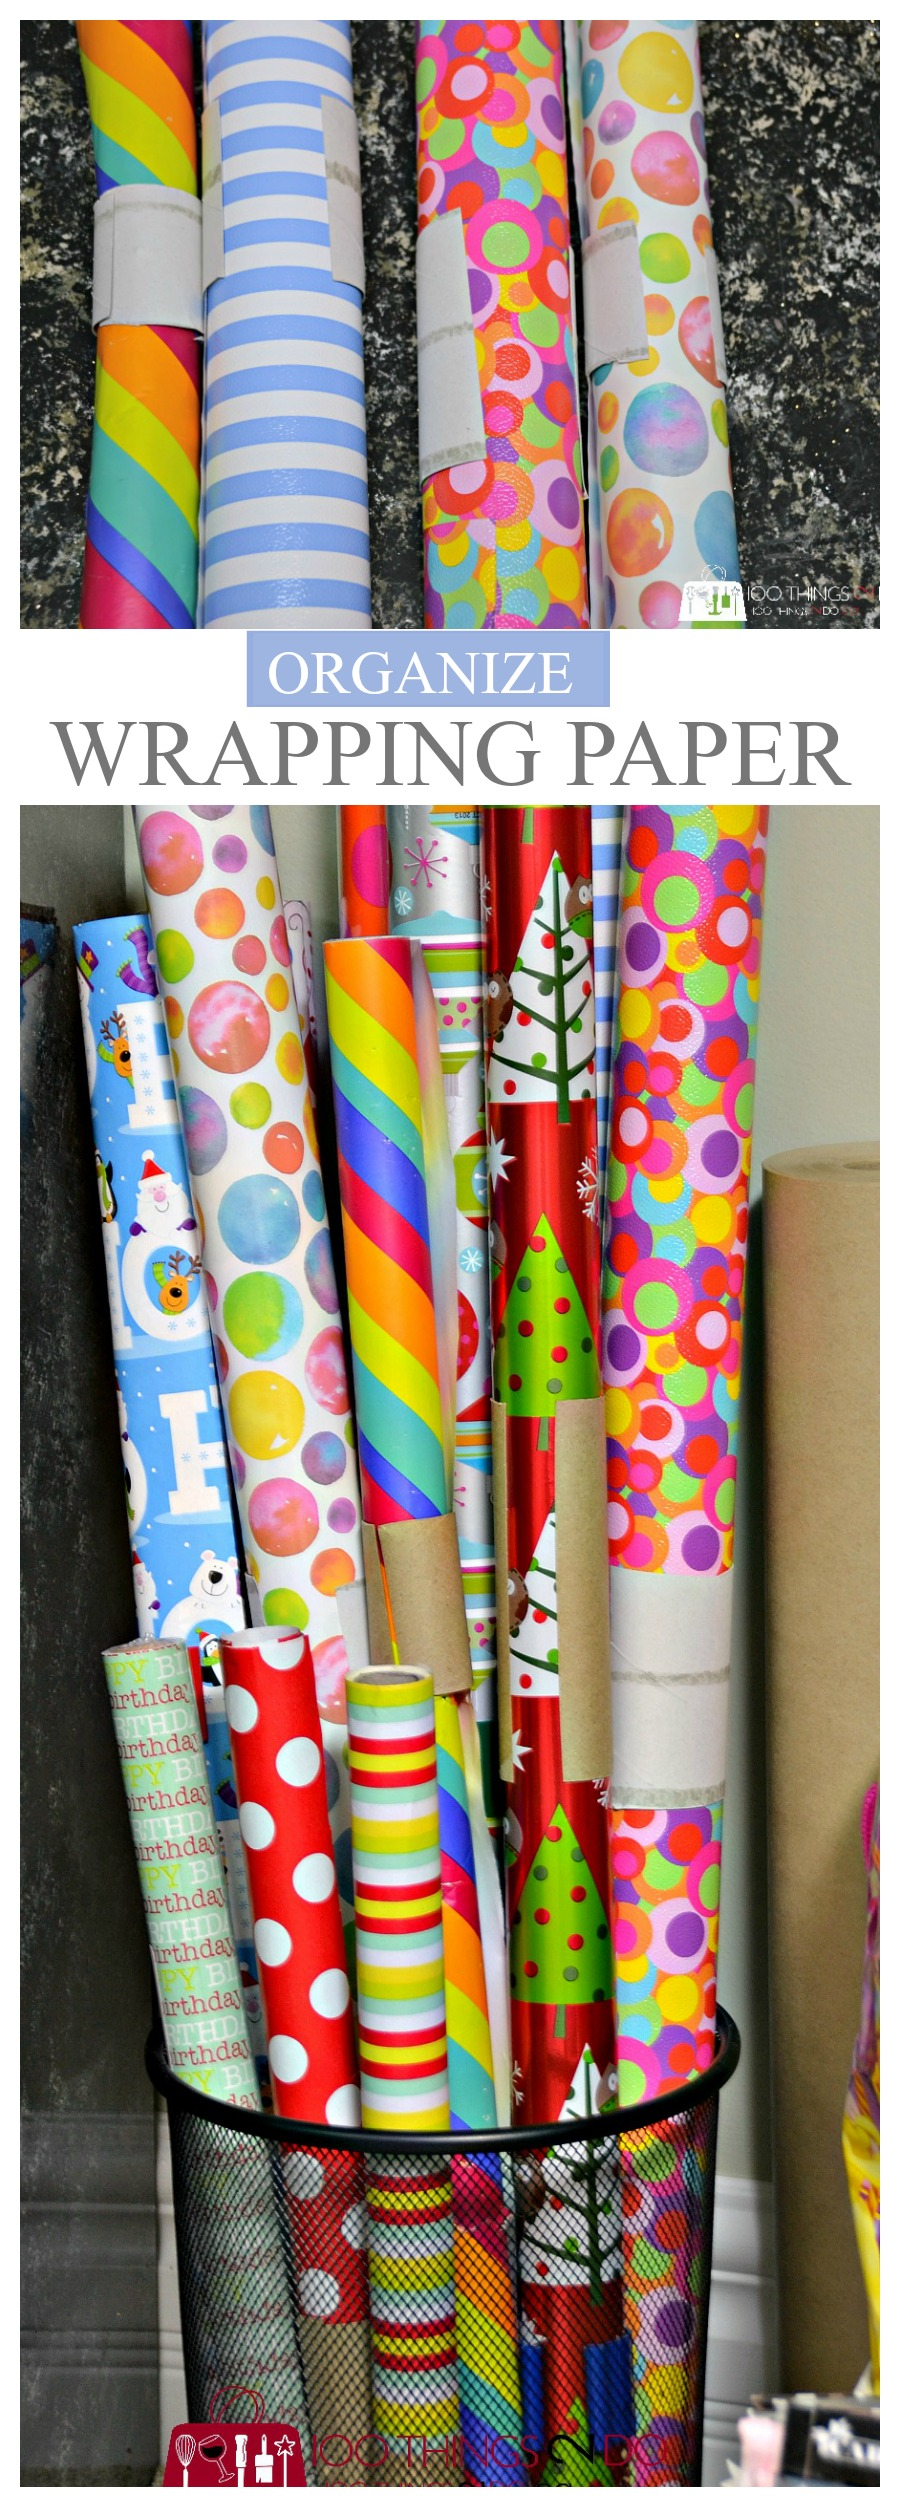 Wrapping paper storage P